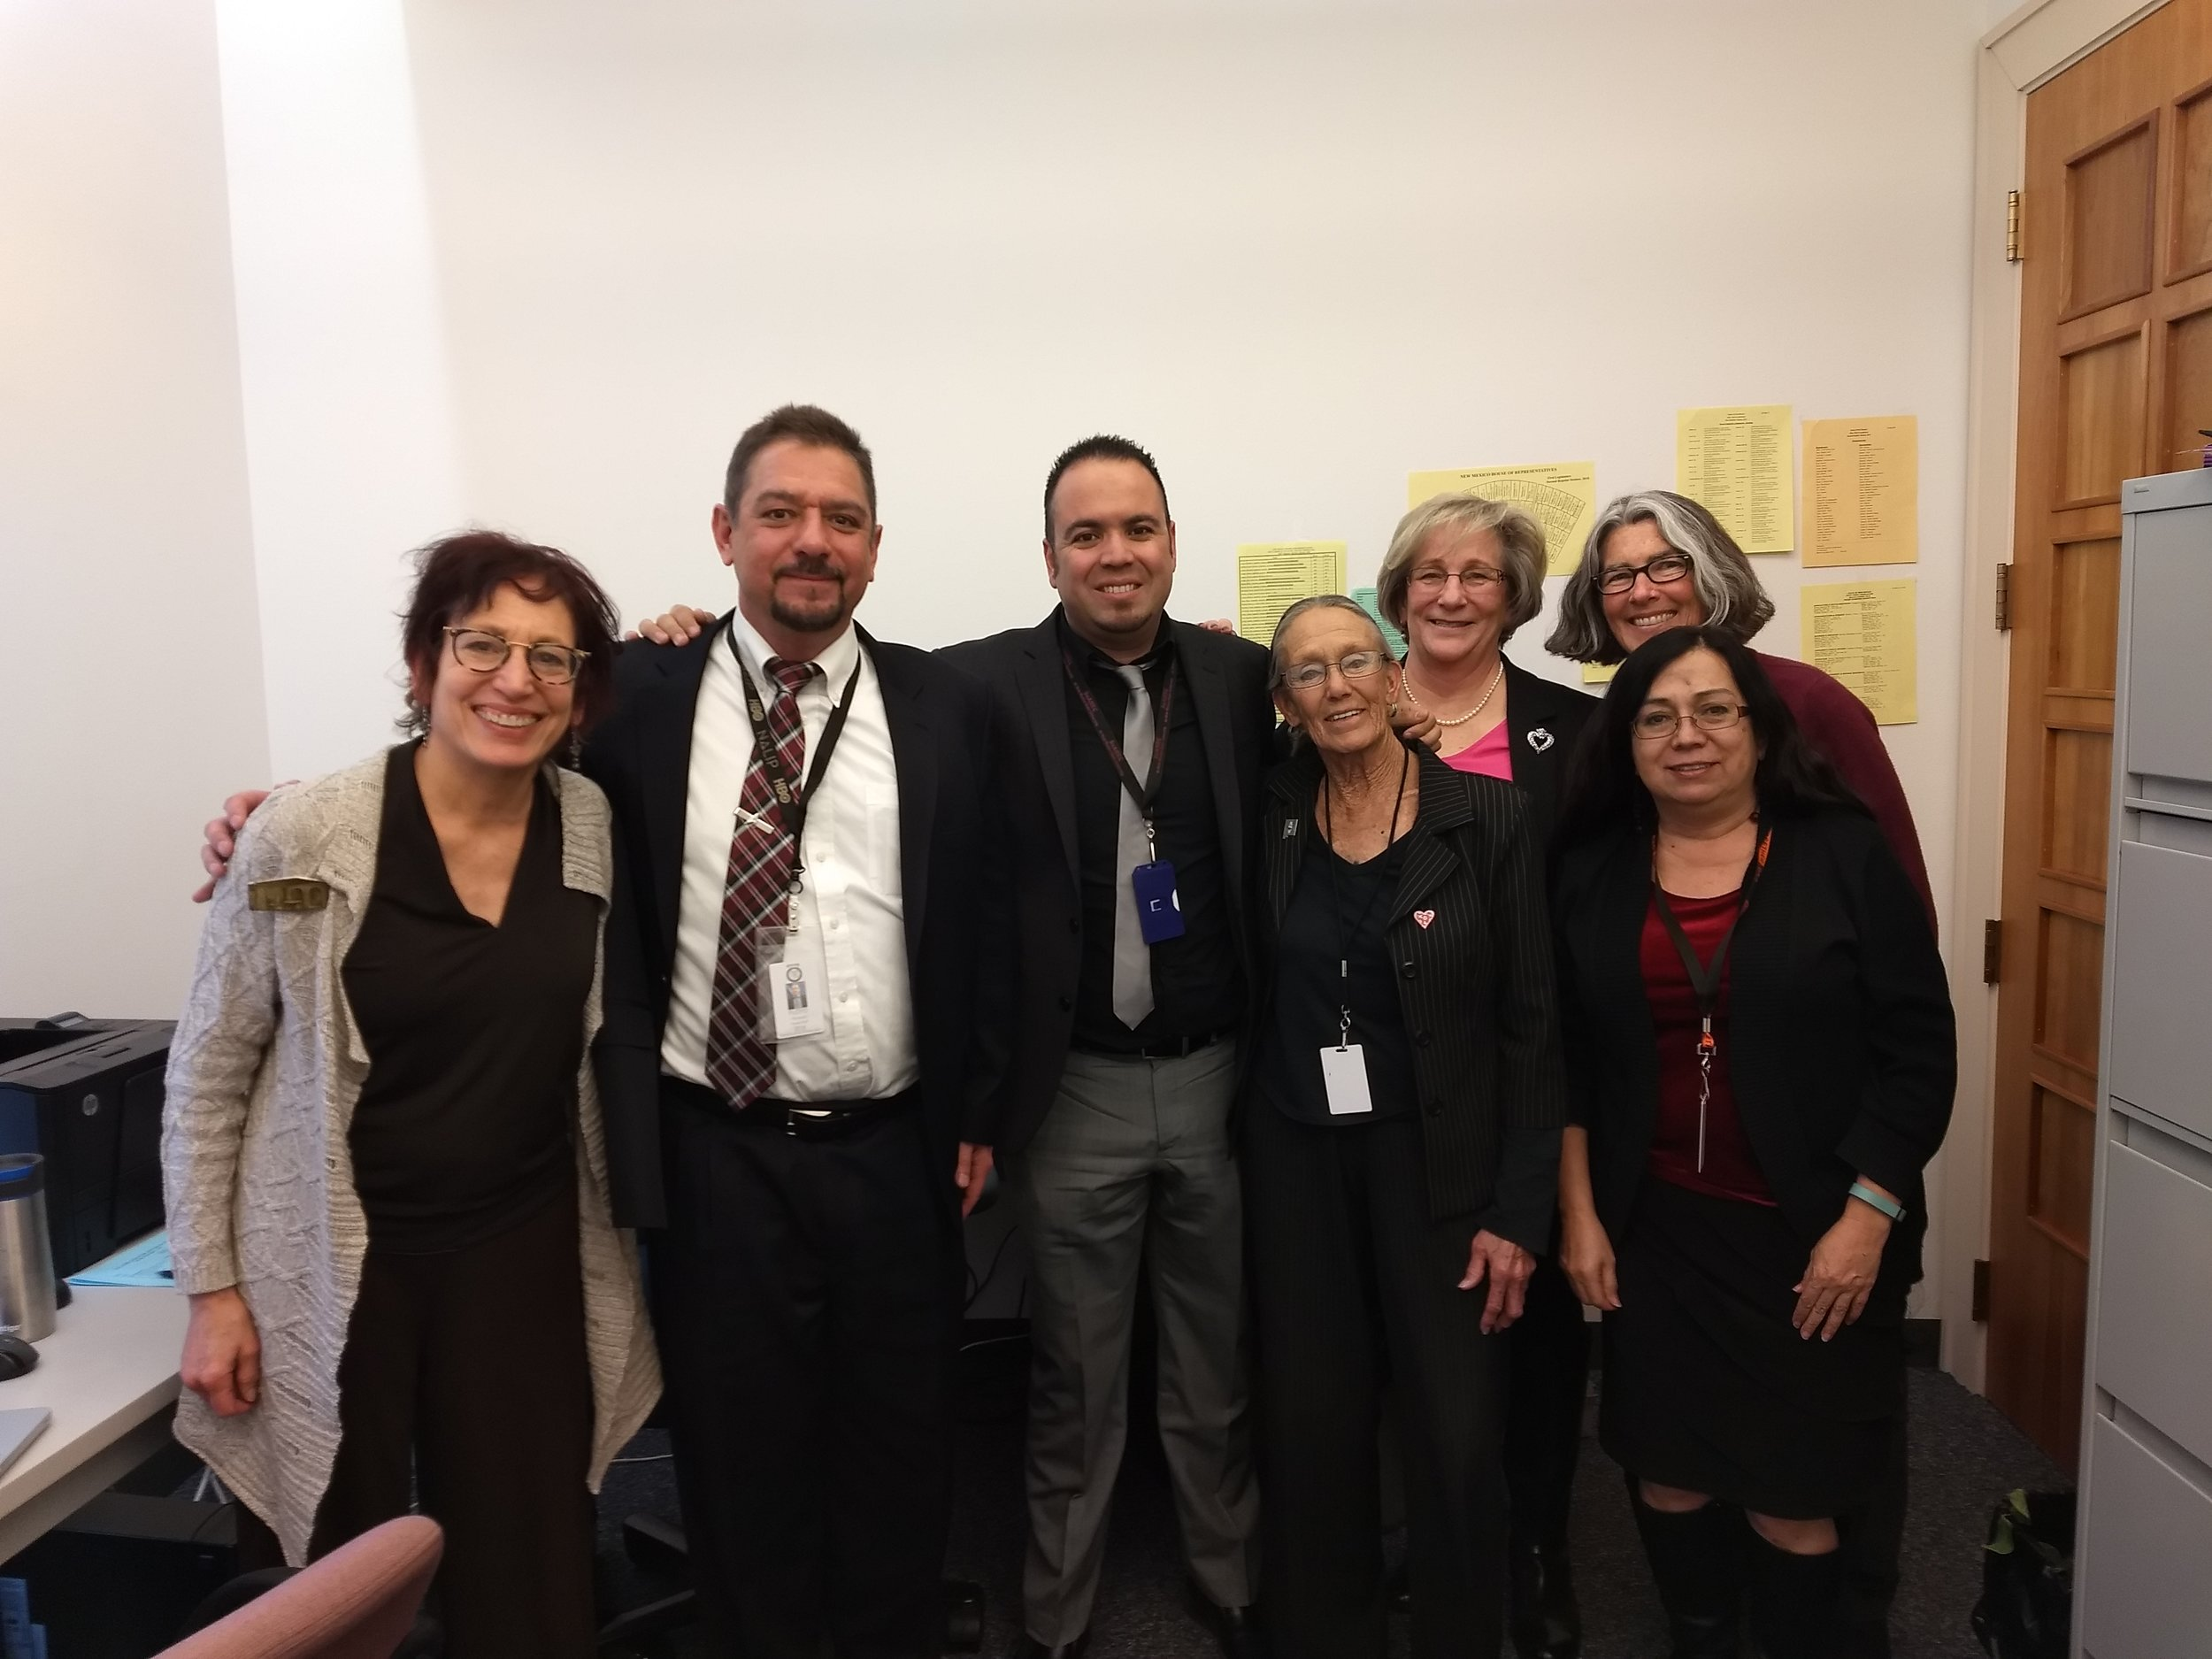 L-R: Myra Segal, Floyd Vasquez, Roberto Lozano, Sharon Dogruel, Merrie Lee Soules, Lynn Canning and Carla Acosta.